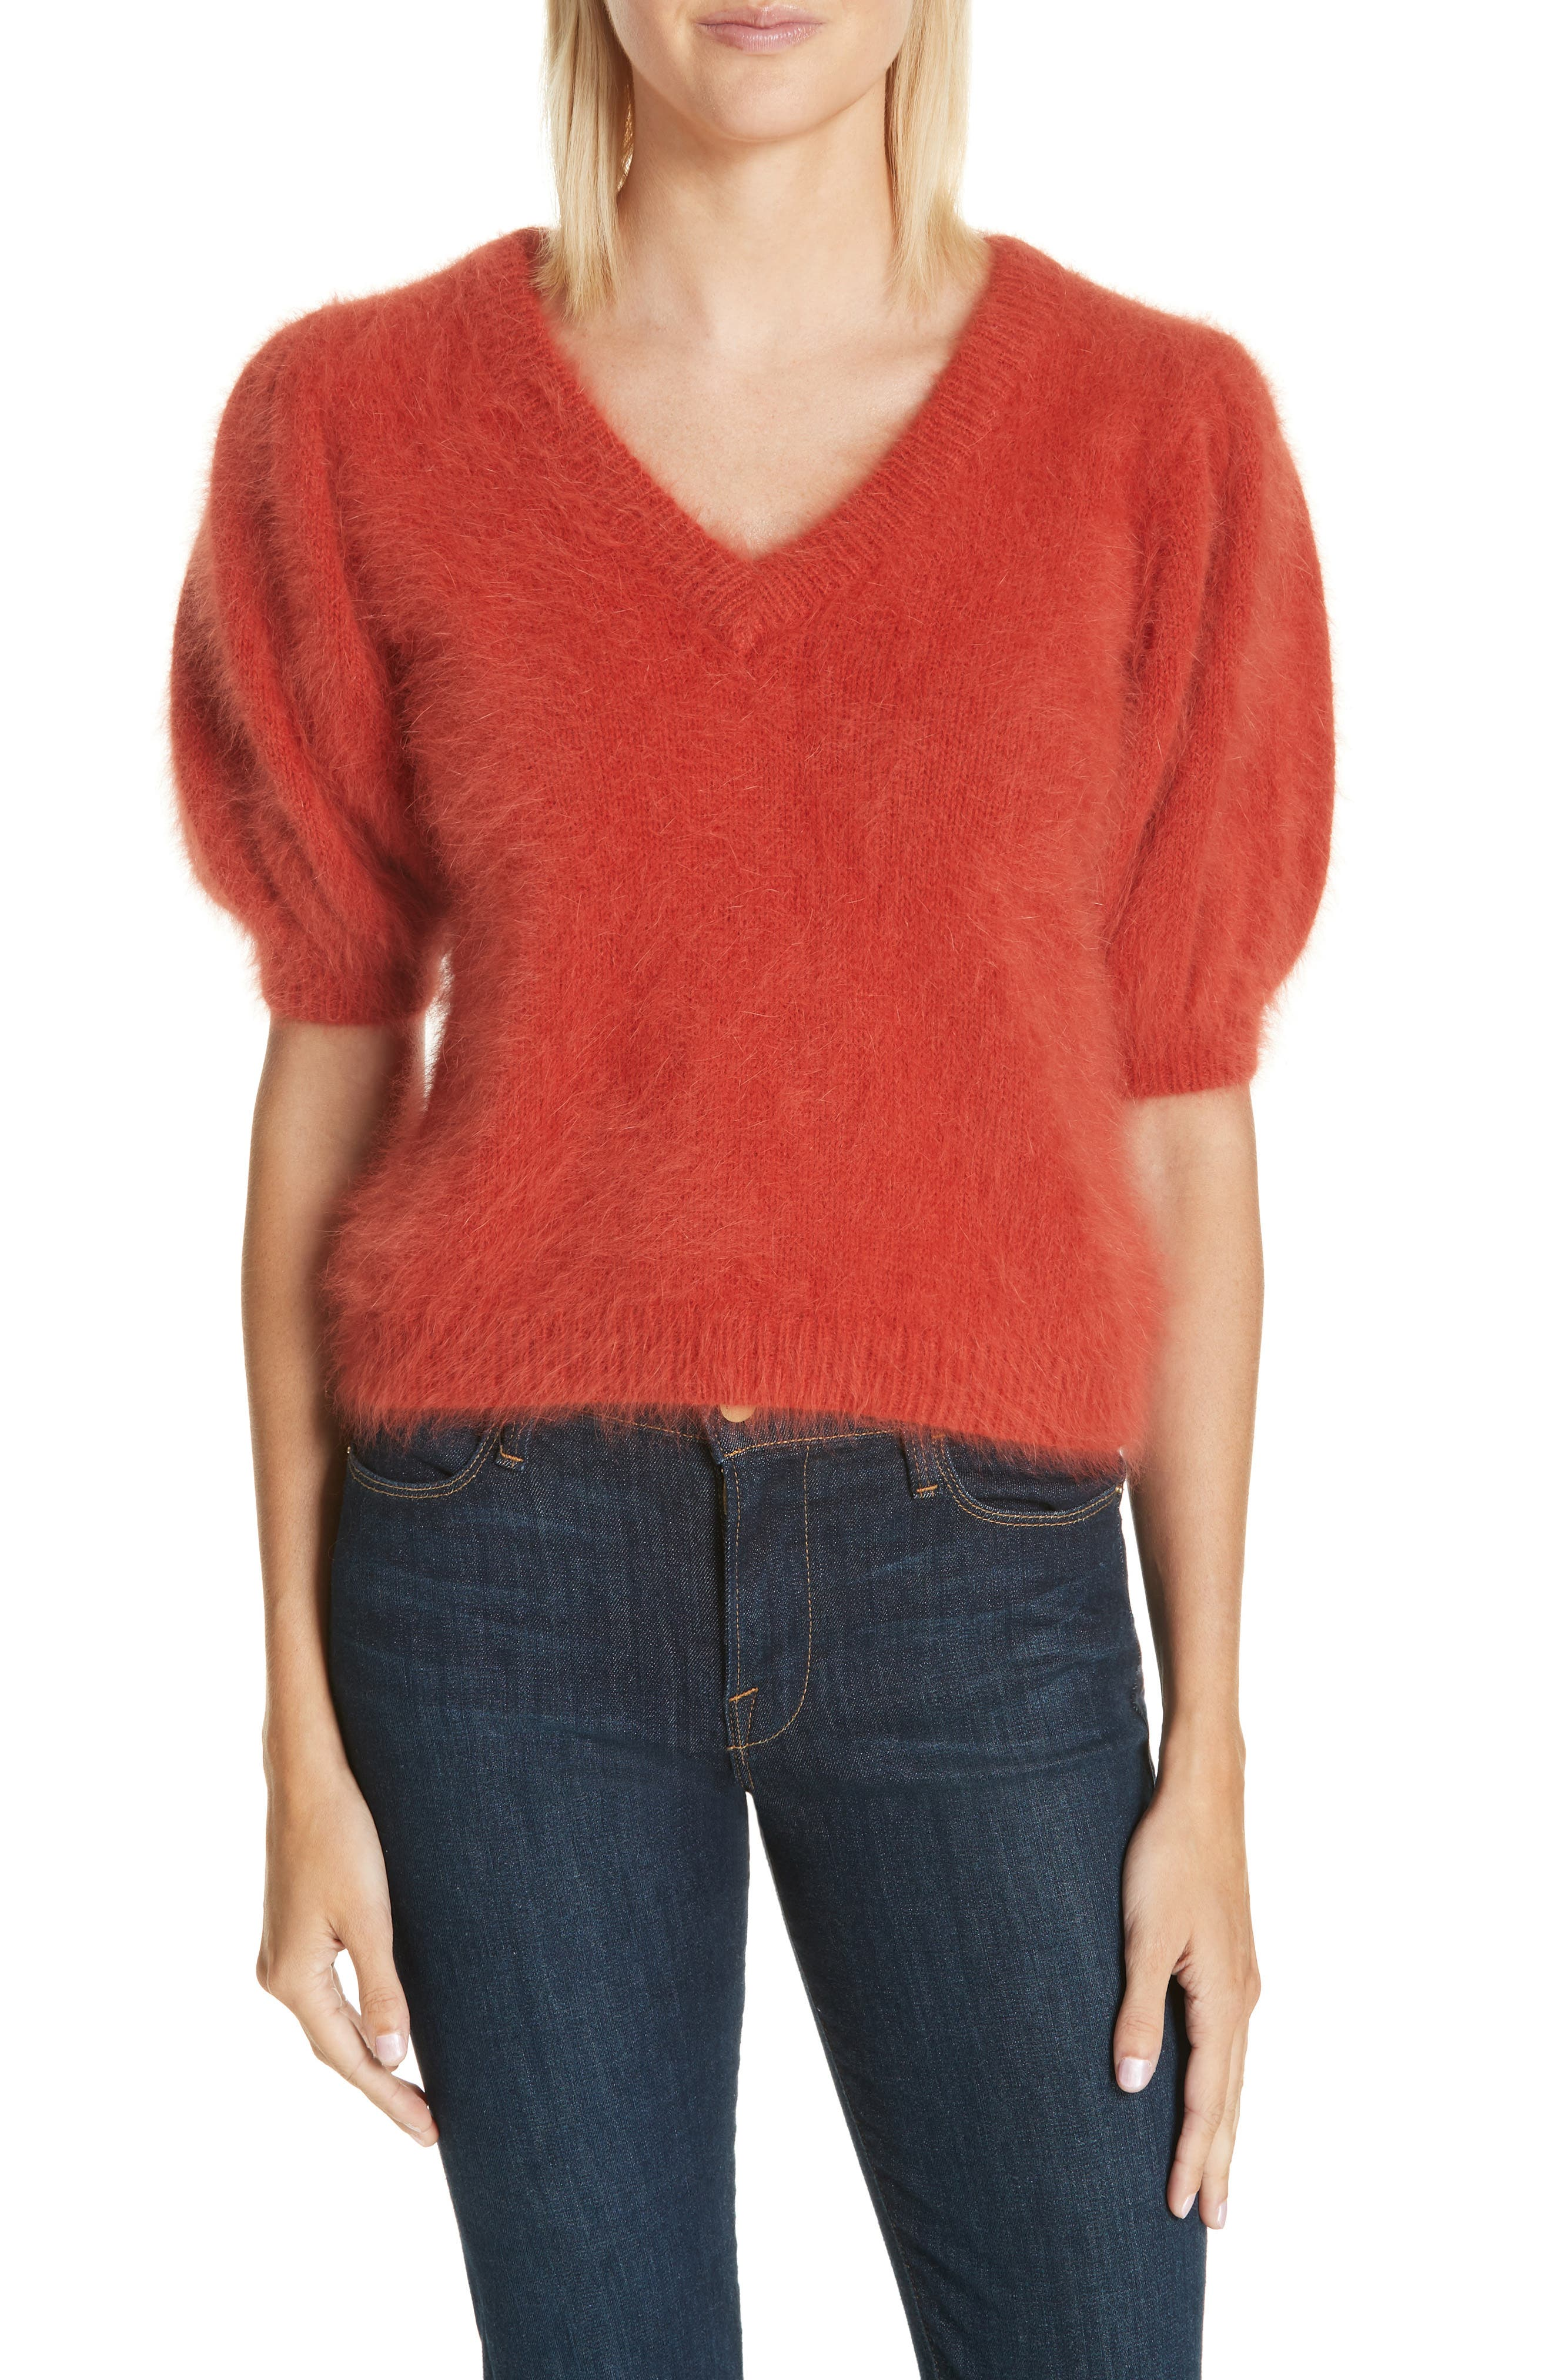 Aries Puff Sleeve Sweater,                             Main thumbnail 1, color,                             CRIMSON